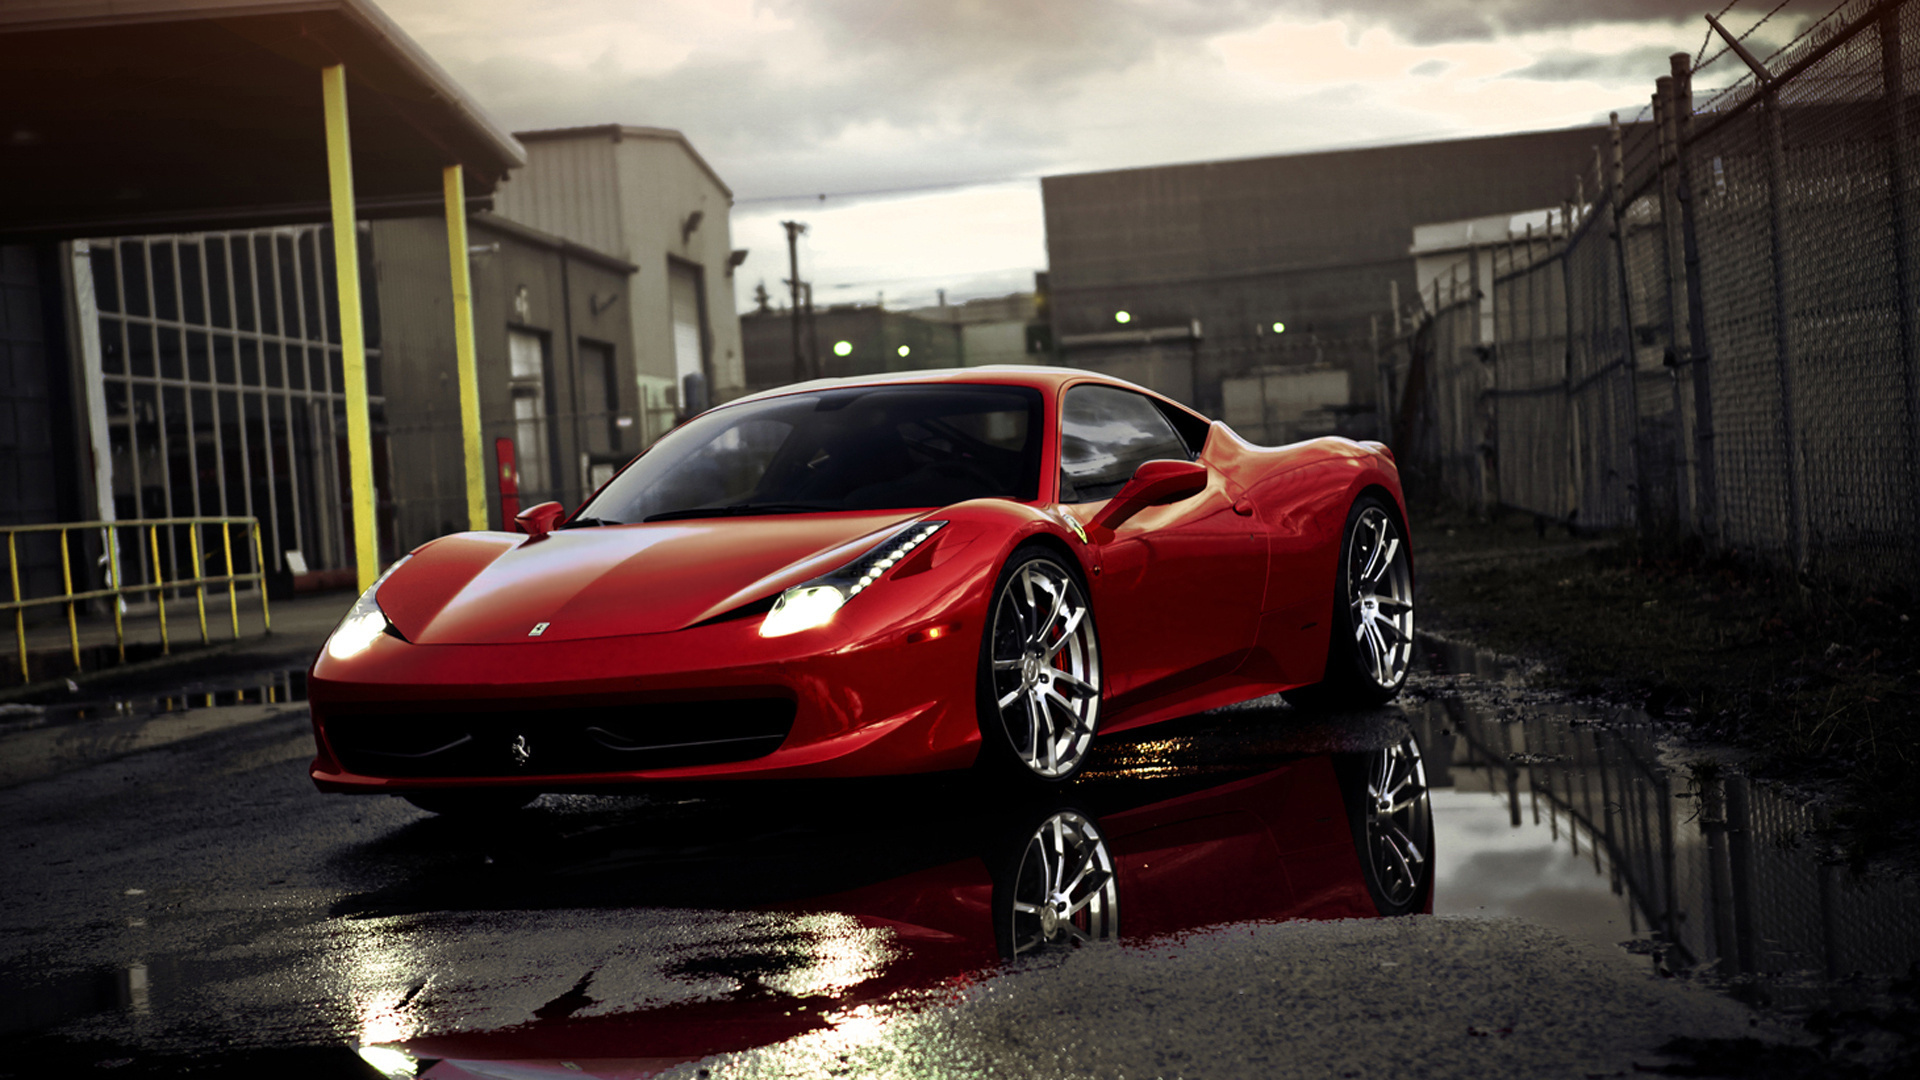 red ferrari wallpaper hd - photo #6